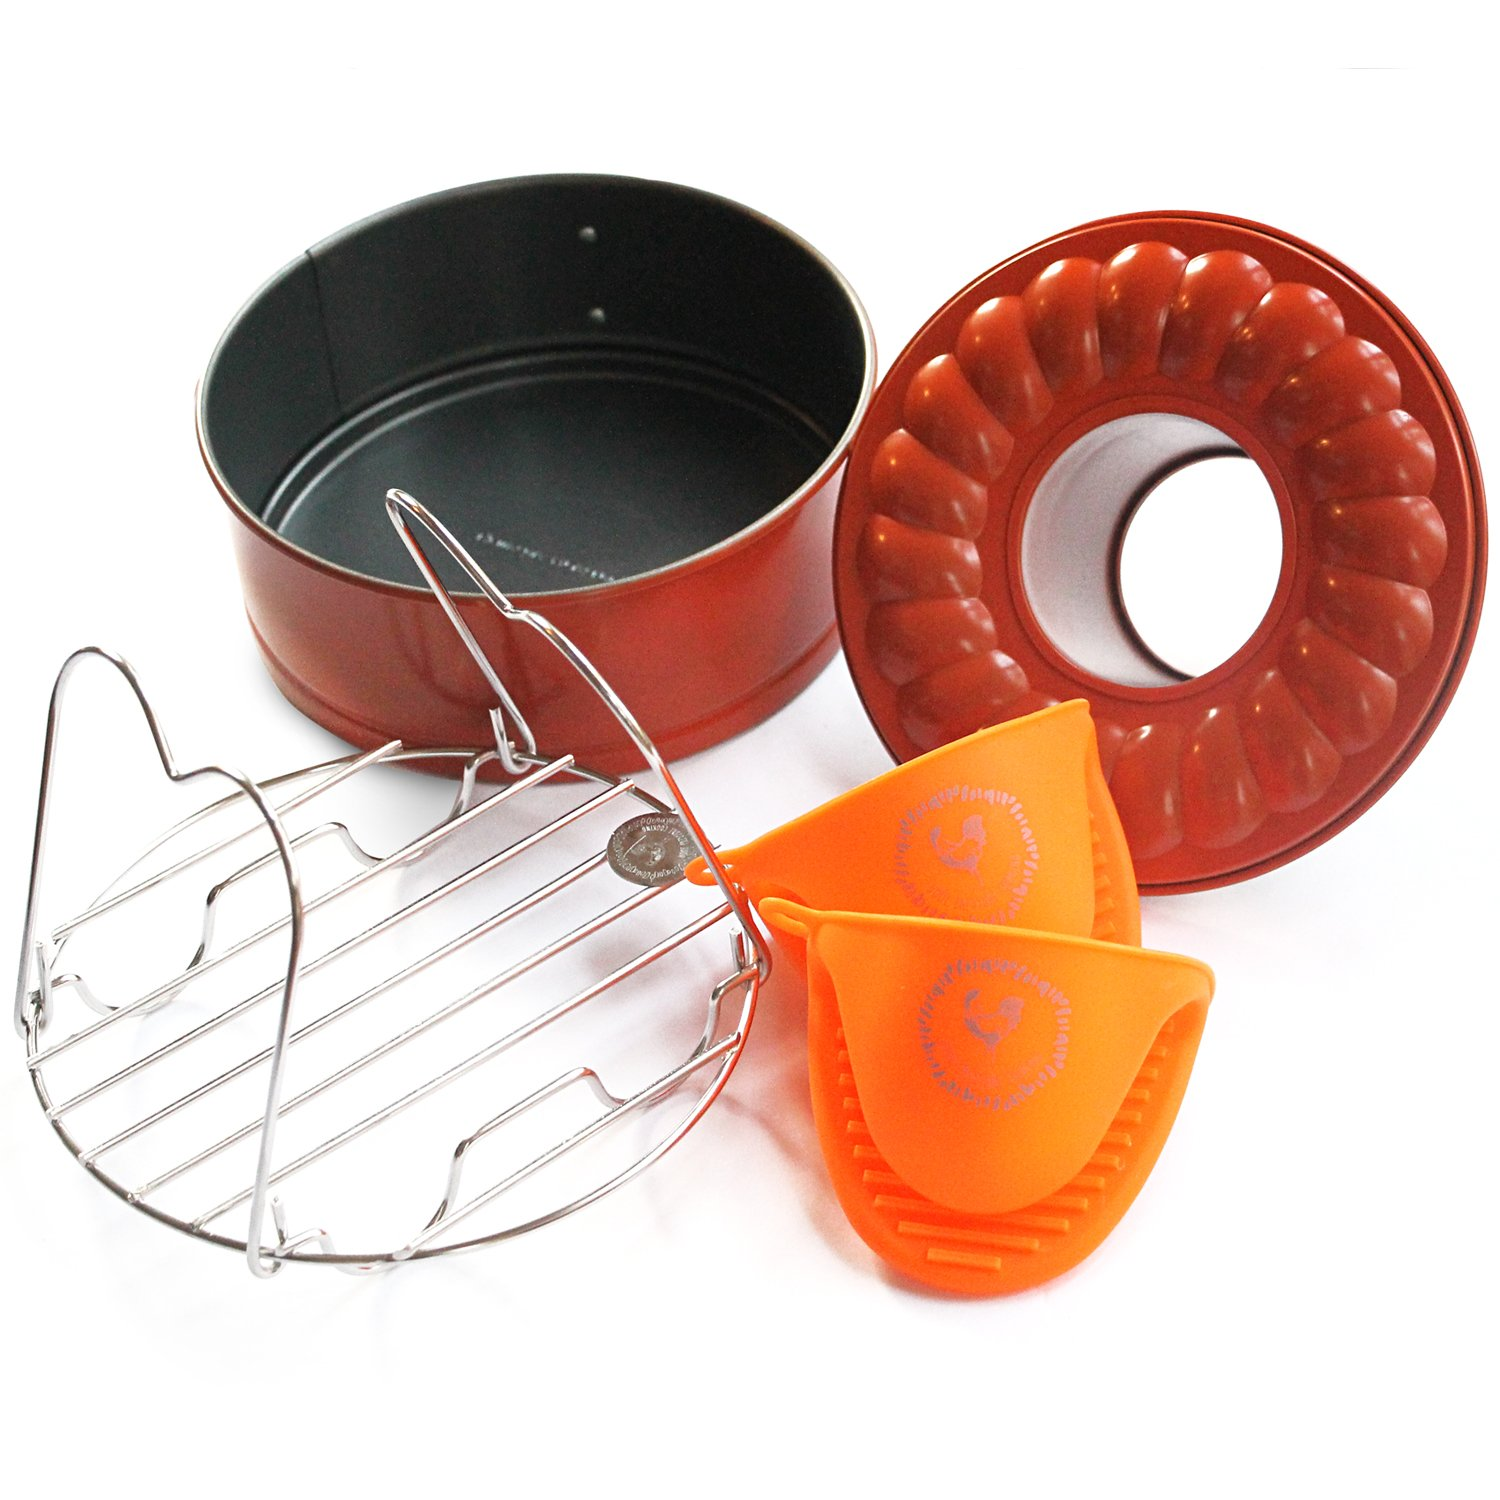 """Pressure Cooking Three Piece Bundle Set For Use With Pressure Cookers And Oven, Includes 7"""" Spring form Bundt Pan, Steamer Trivet, Silicone Mitt"""